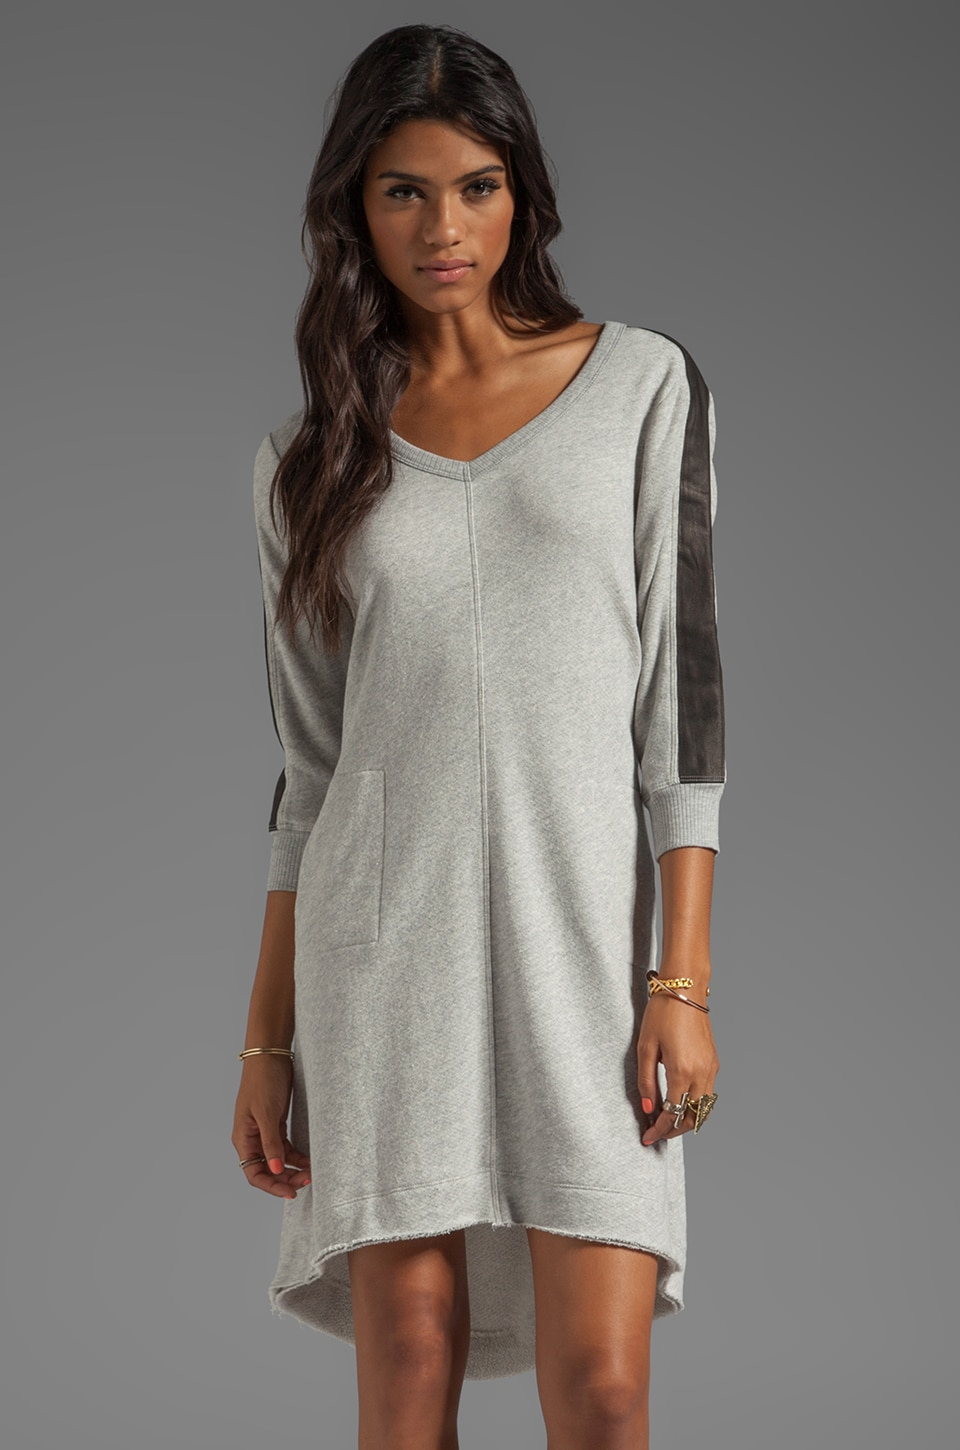 Wilt Vintage French Terry Leather Mix Dress in Grey Heather/Black